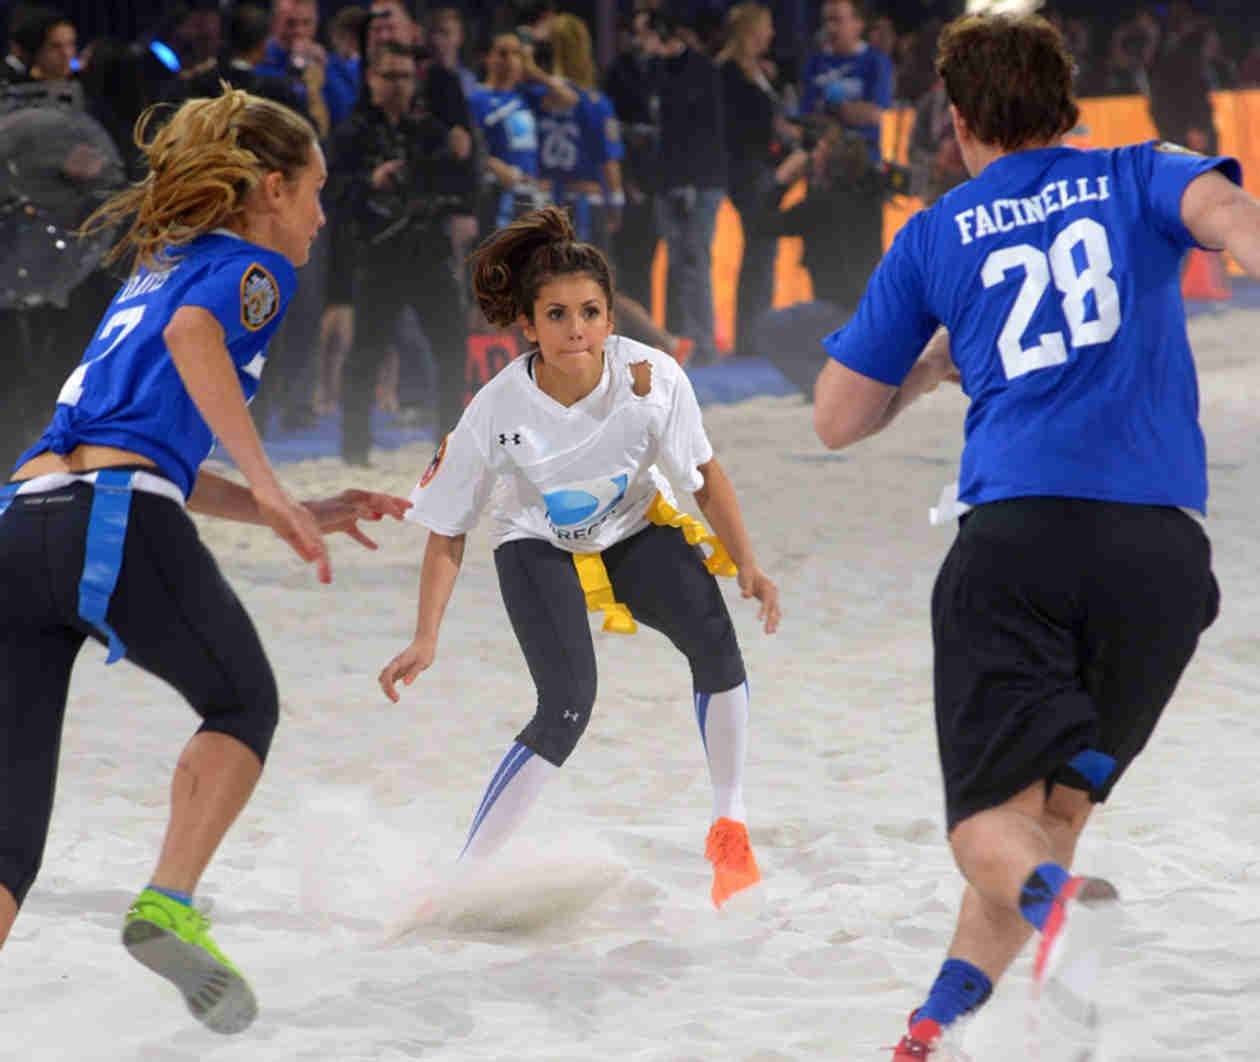 DIRECTV's Seventh Annual Celebrity Beach Bowl Features ...